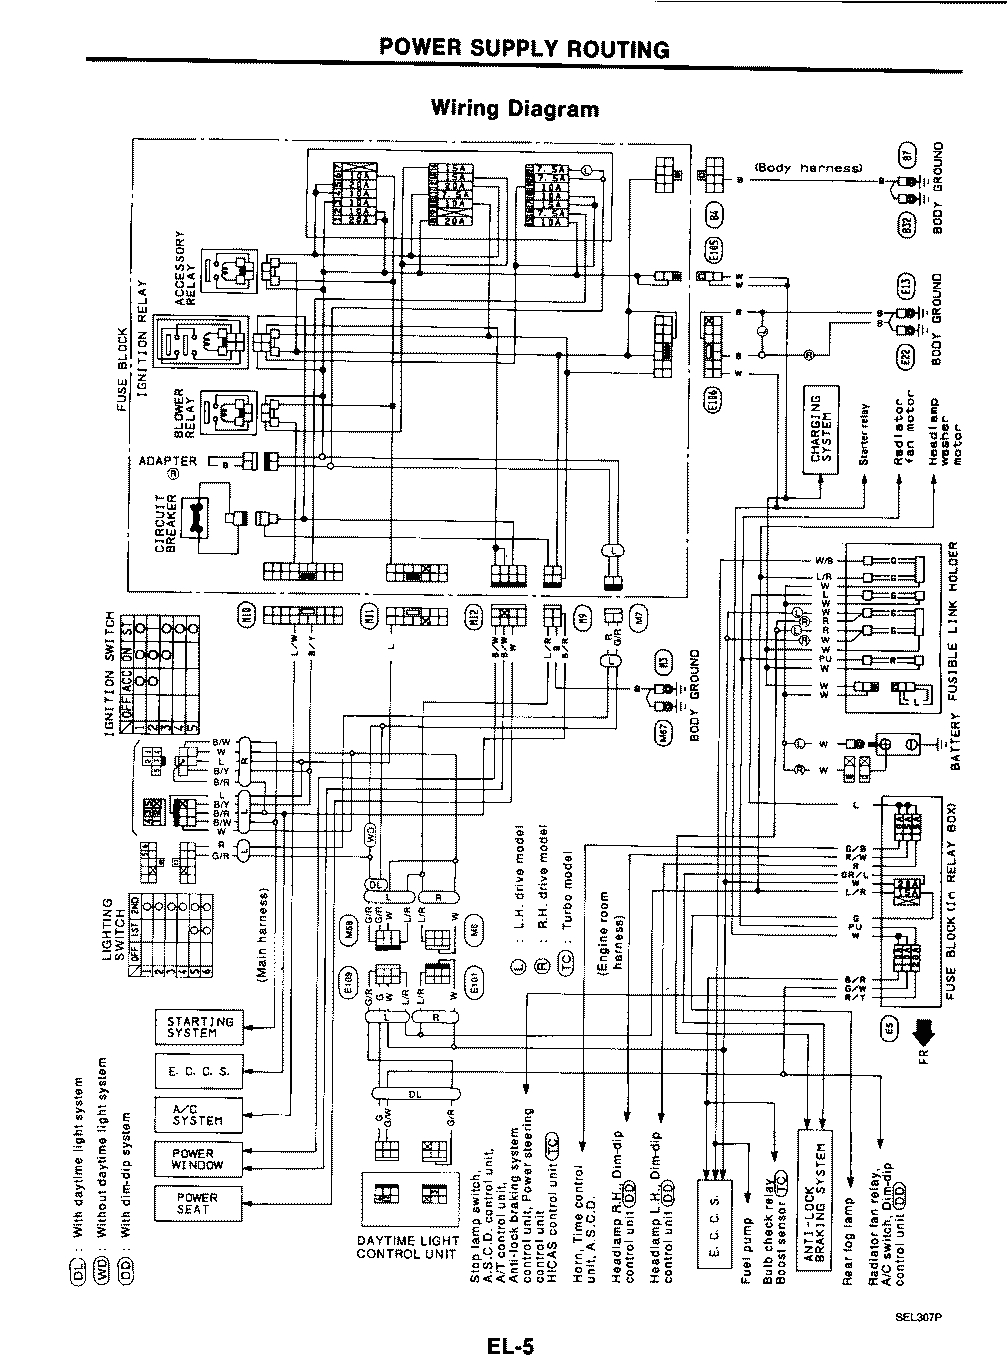 power supply wiring diagram nissan 300zx gif